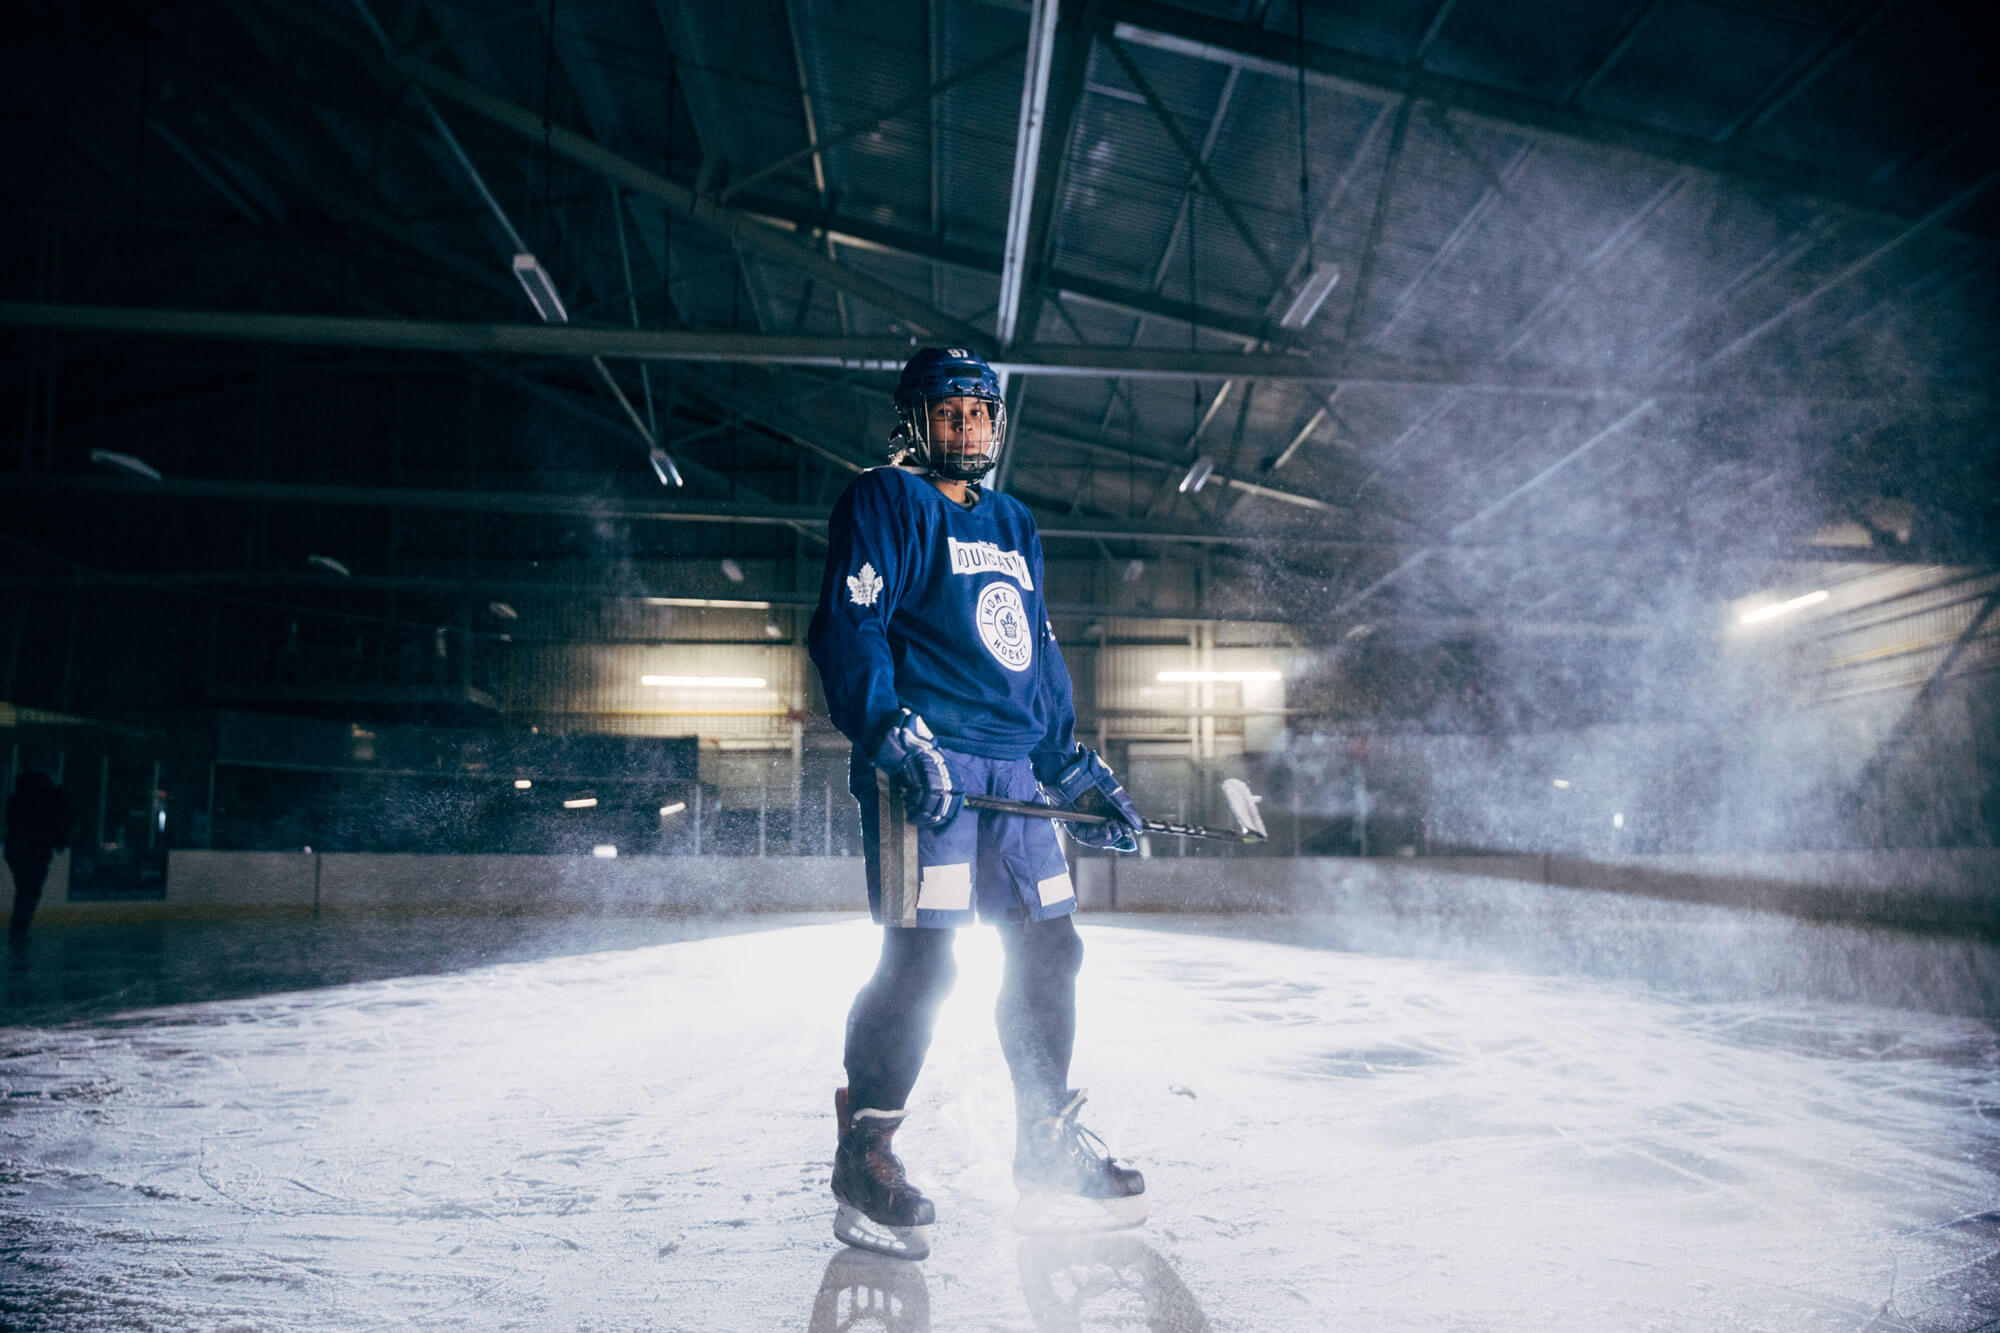 Female hockey player backlit by arena lights